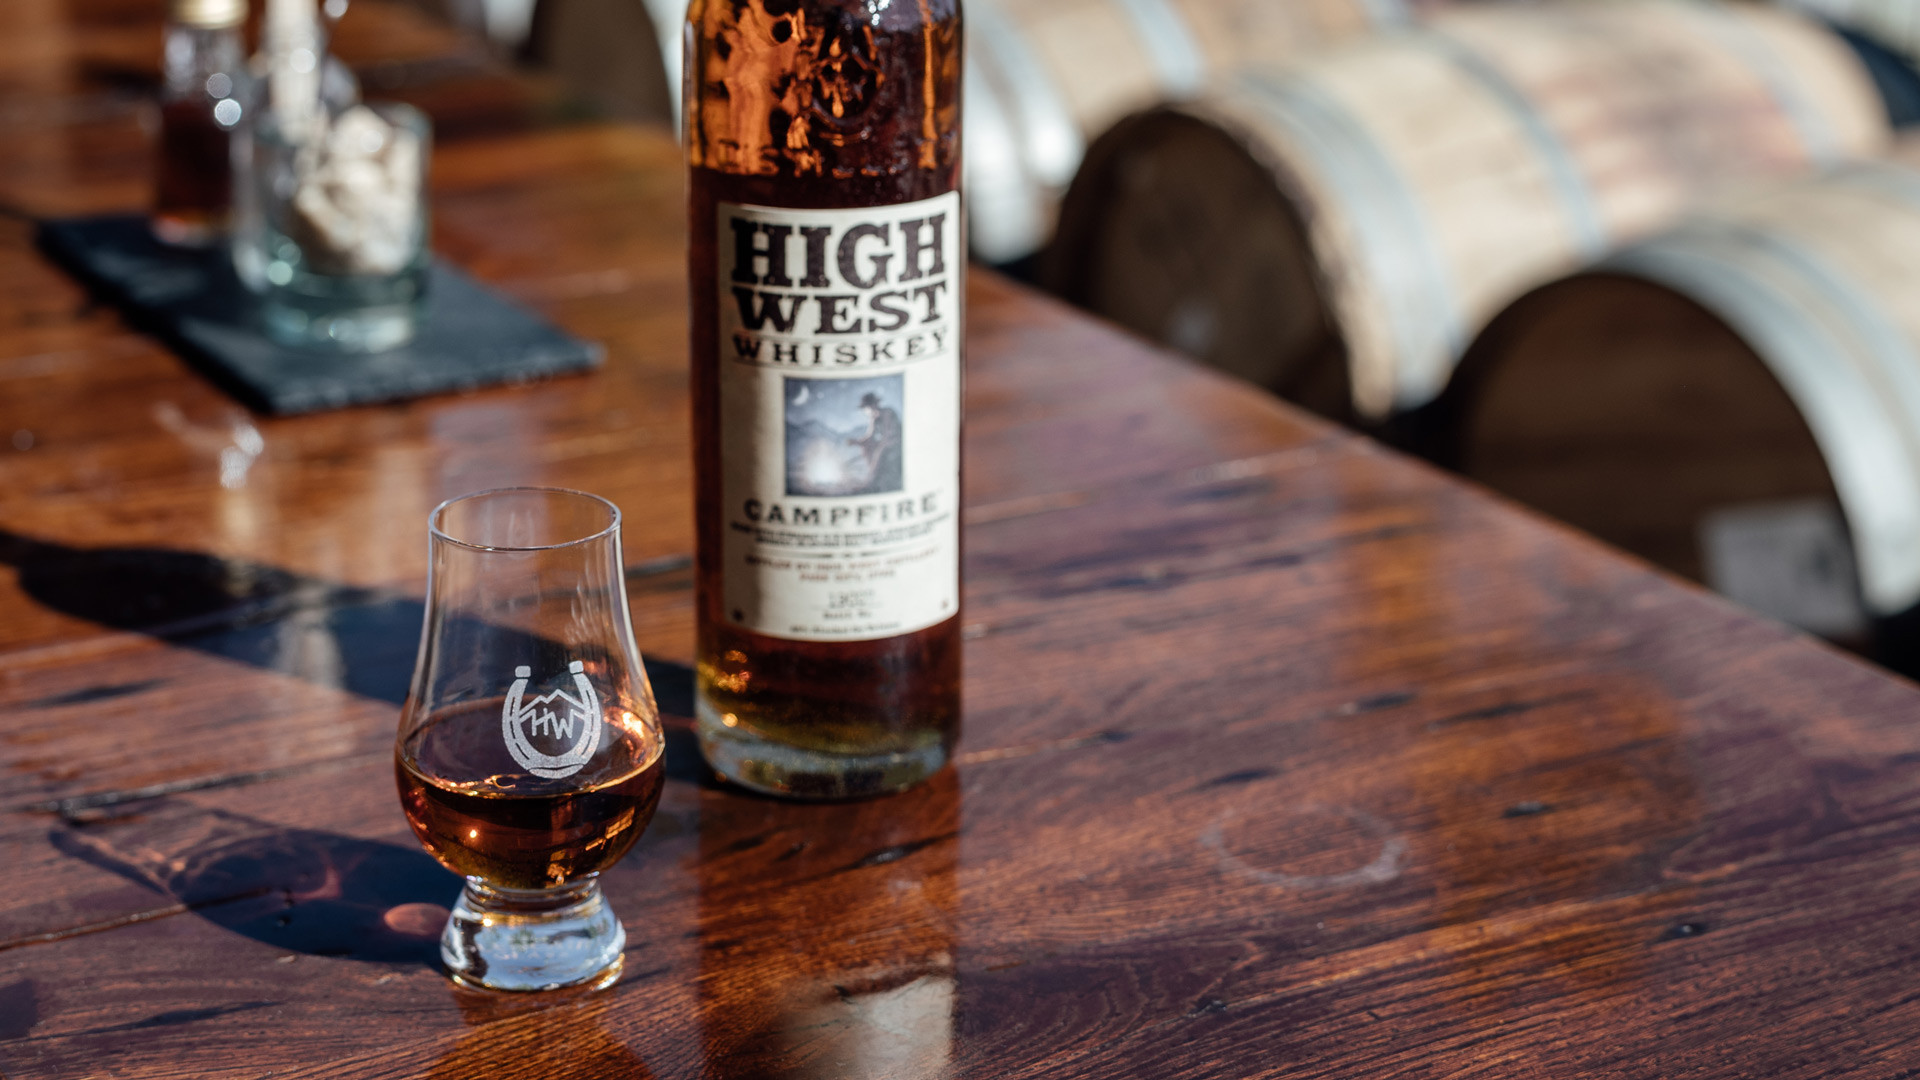 High West American craft whisky is now available at LCBO | A bottle of High West Campfire and a glass